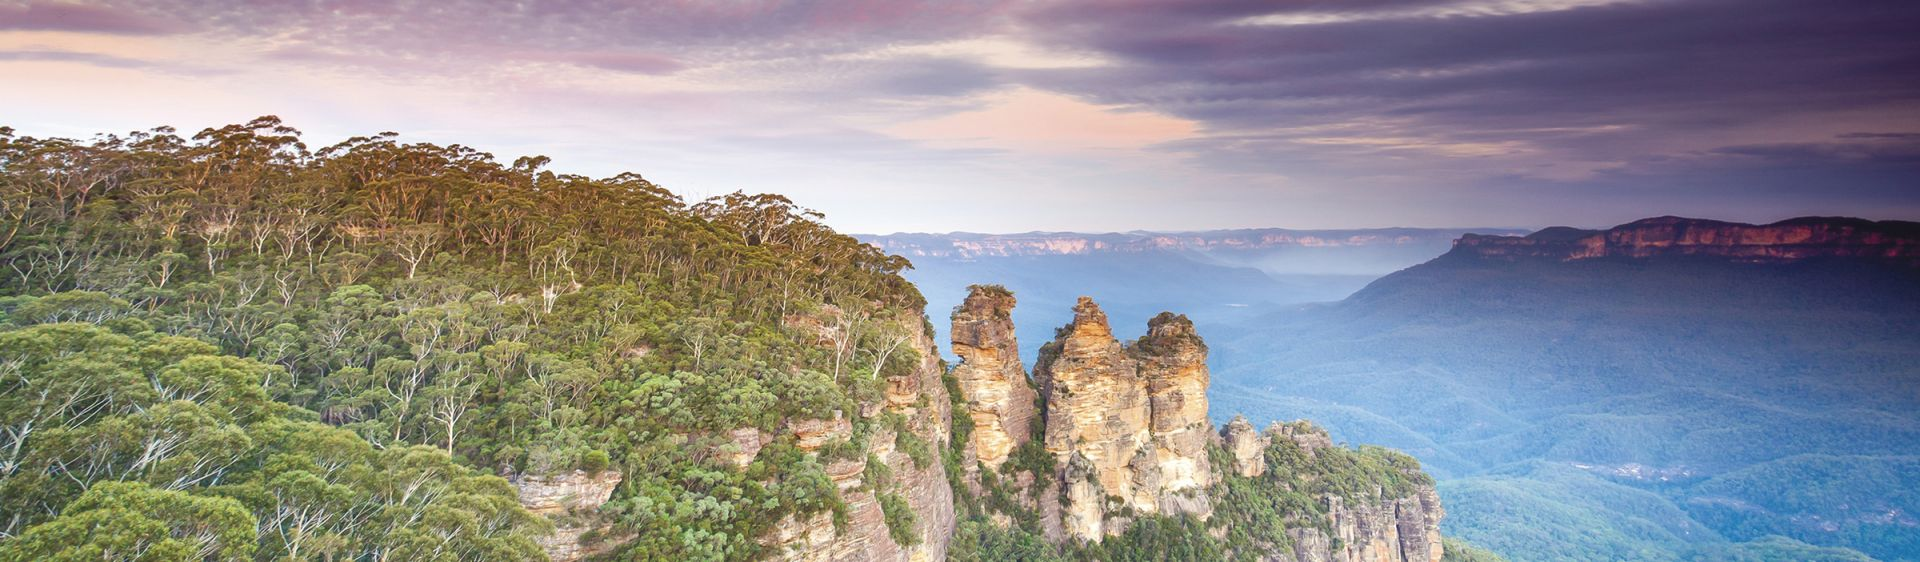 Three Sisters in Katoomba - Blue Mountains